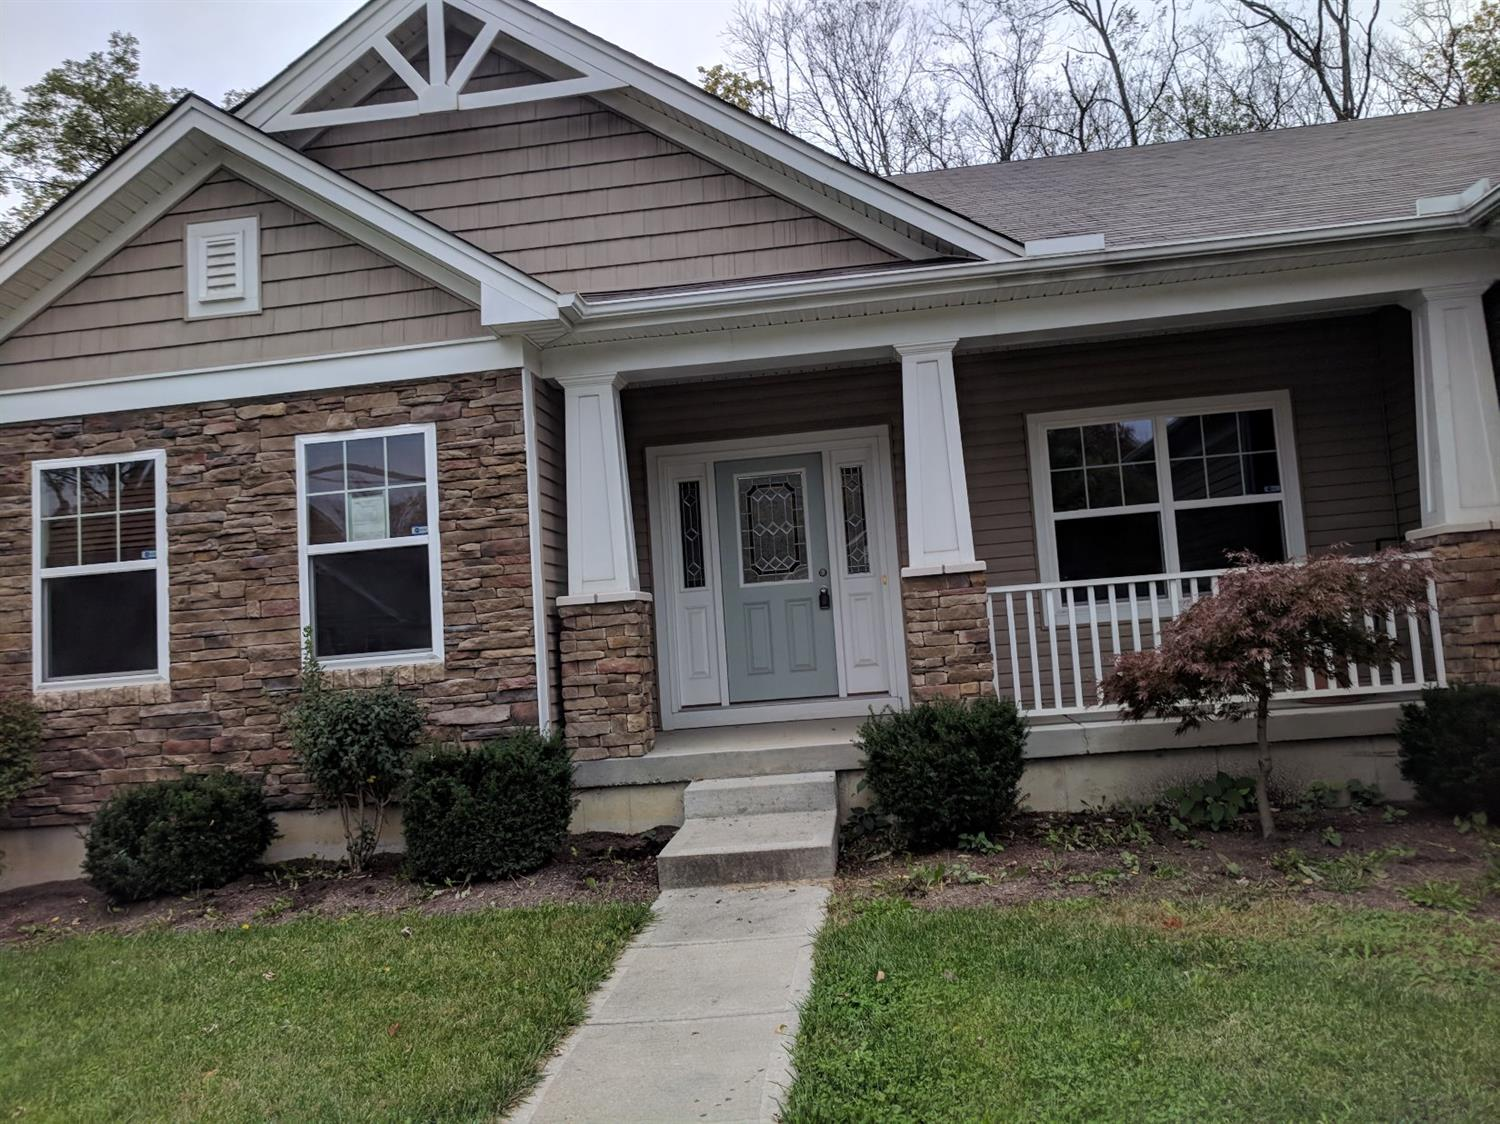 Move In Ready! The Sinatra, almost new by Potterhill Homes in Northwind. 2,251 square feet, open floor plan, hardwood floors, 9 foot ceilings, fenced in back yard, LEED certified, 9 years left on tax abatement.